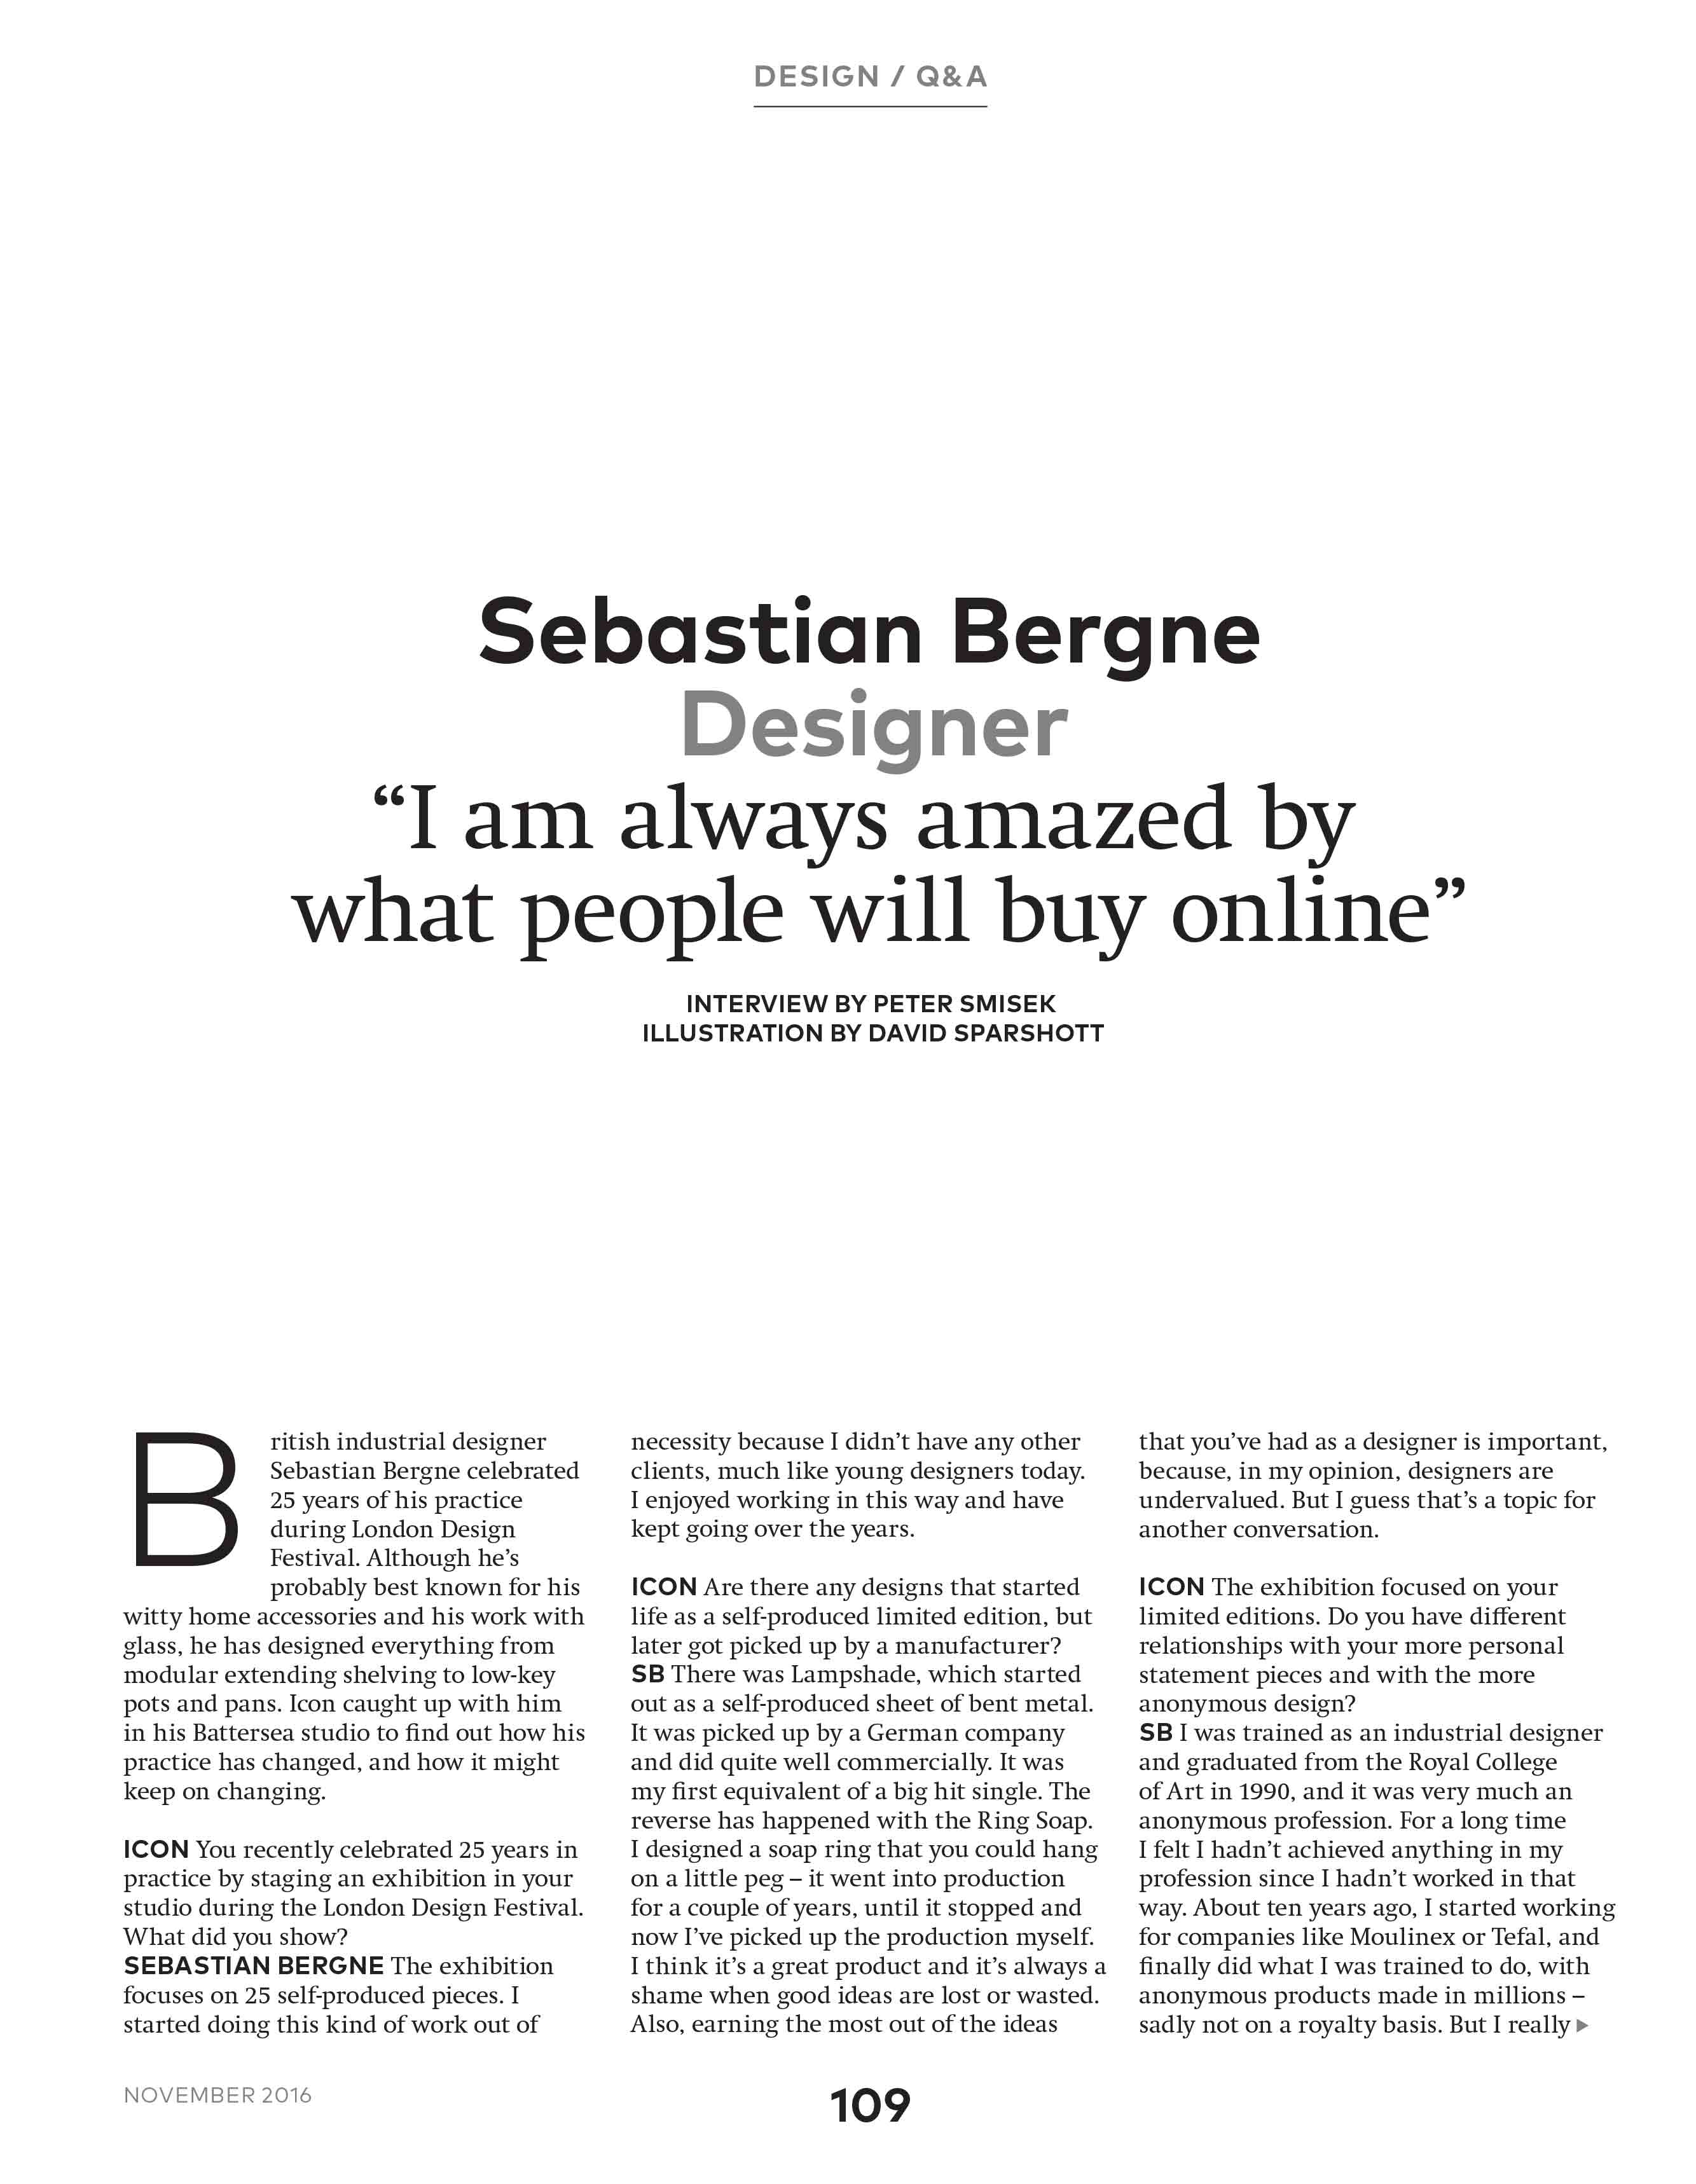 Interview with Sebastian Bergne